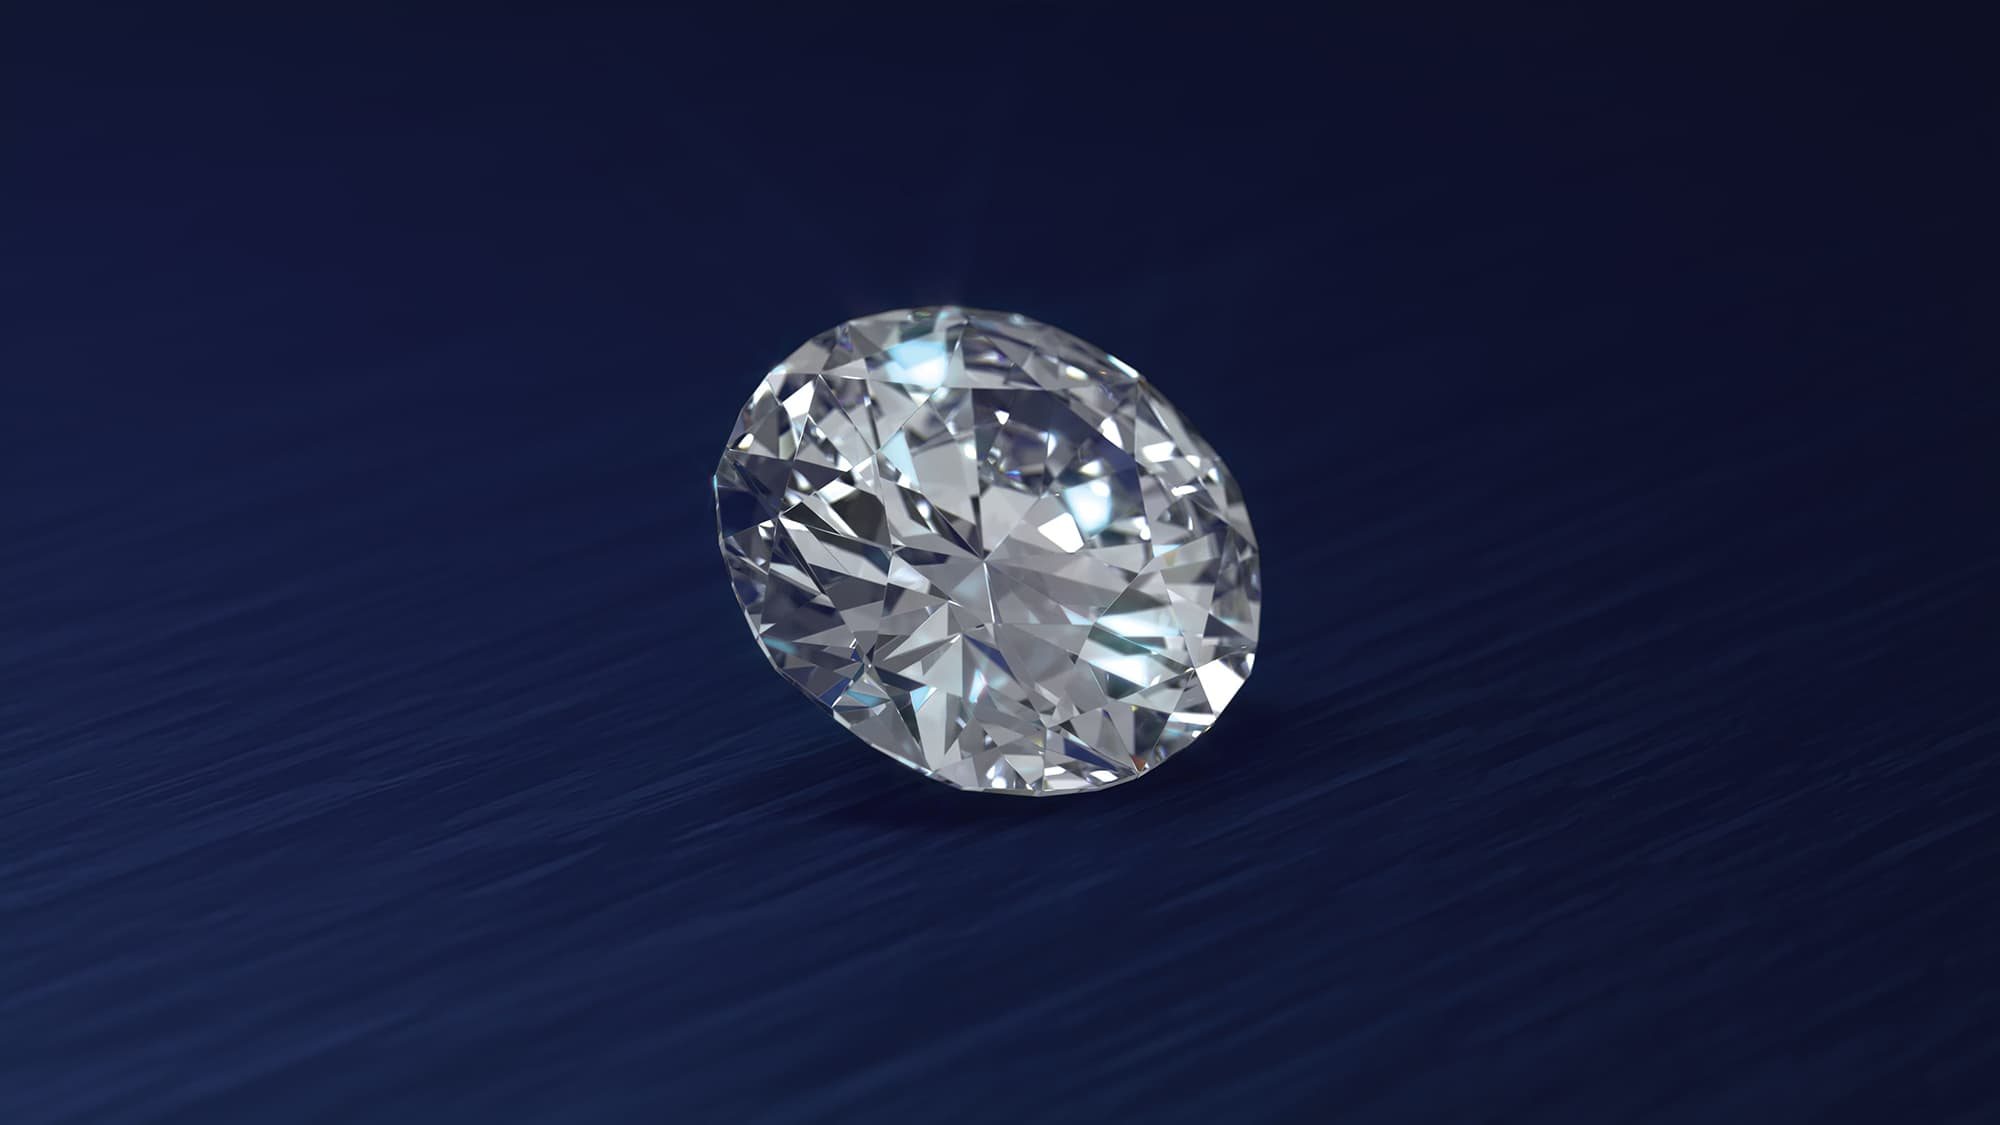 Lusix diamond on blue background created in CGI